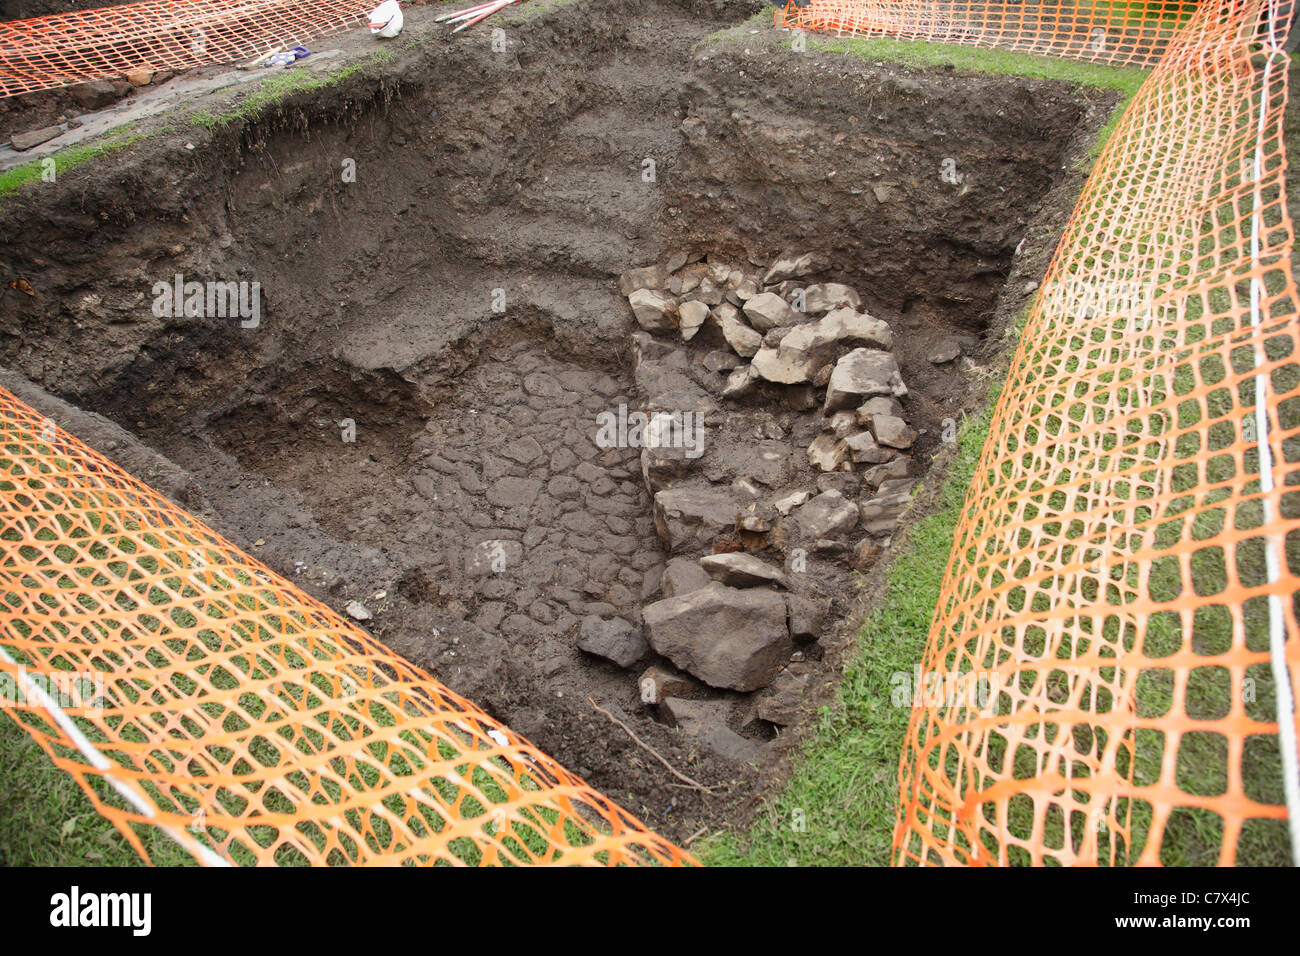 An archealogical dig to investigate Paisley Abbey Drain in Renfrewshire Scotland UK - Stock Image